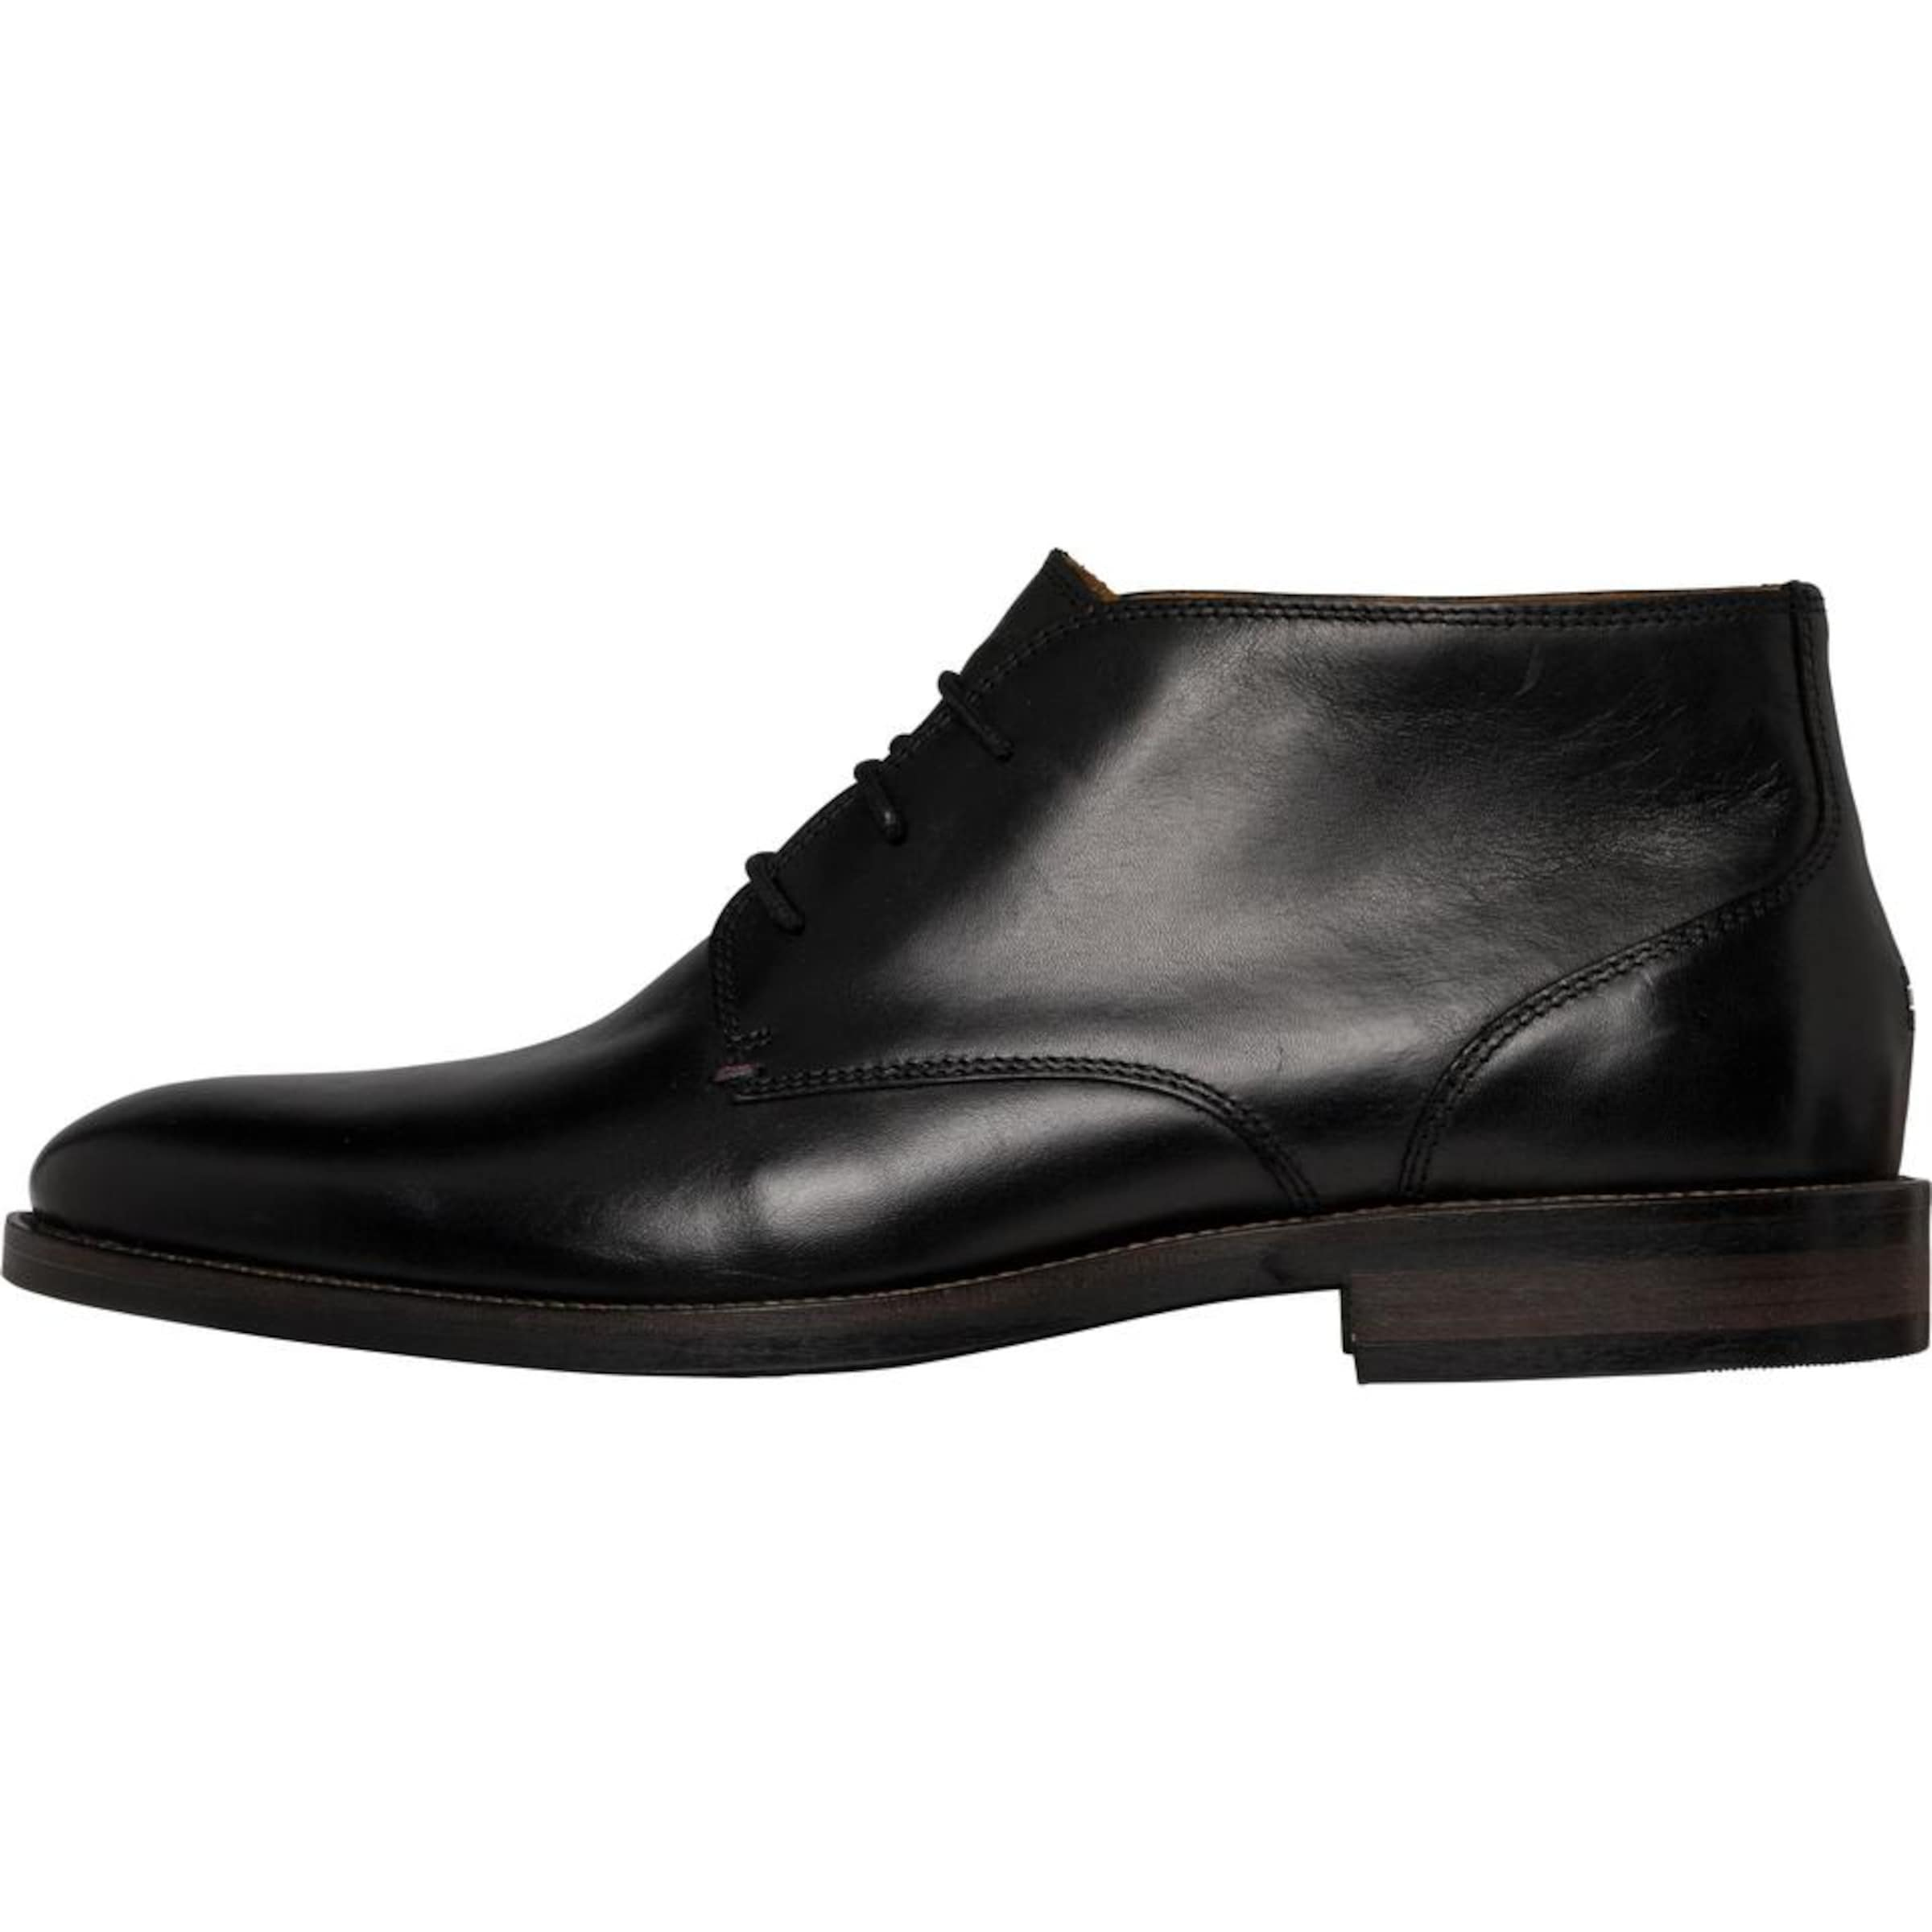 TOMMY HILFIGER | ESSENTIAL Schnürhalbschuh  ESSENTIAL | LEATHER BOOT bfb3fe